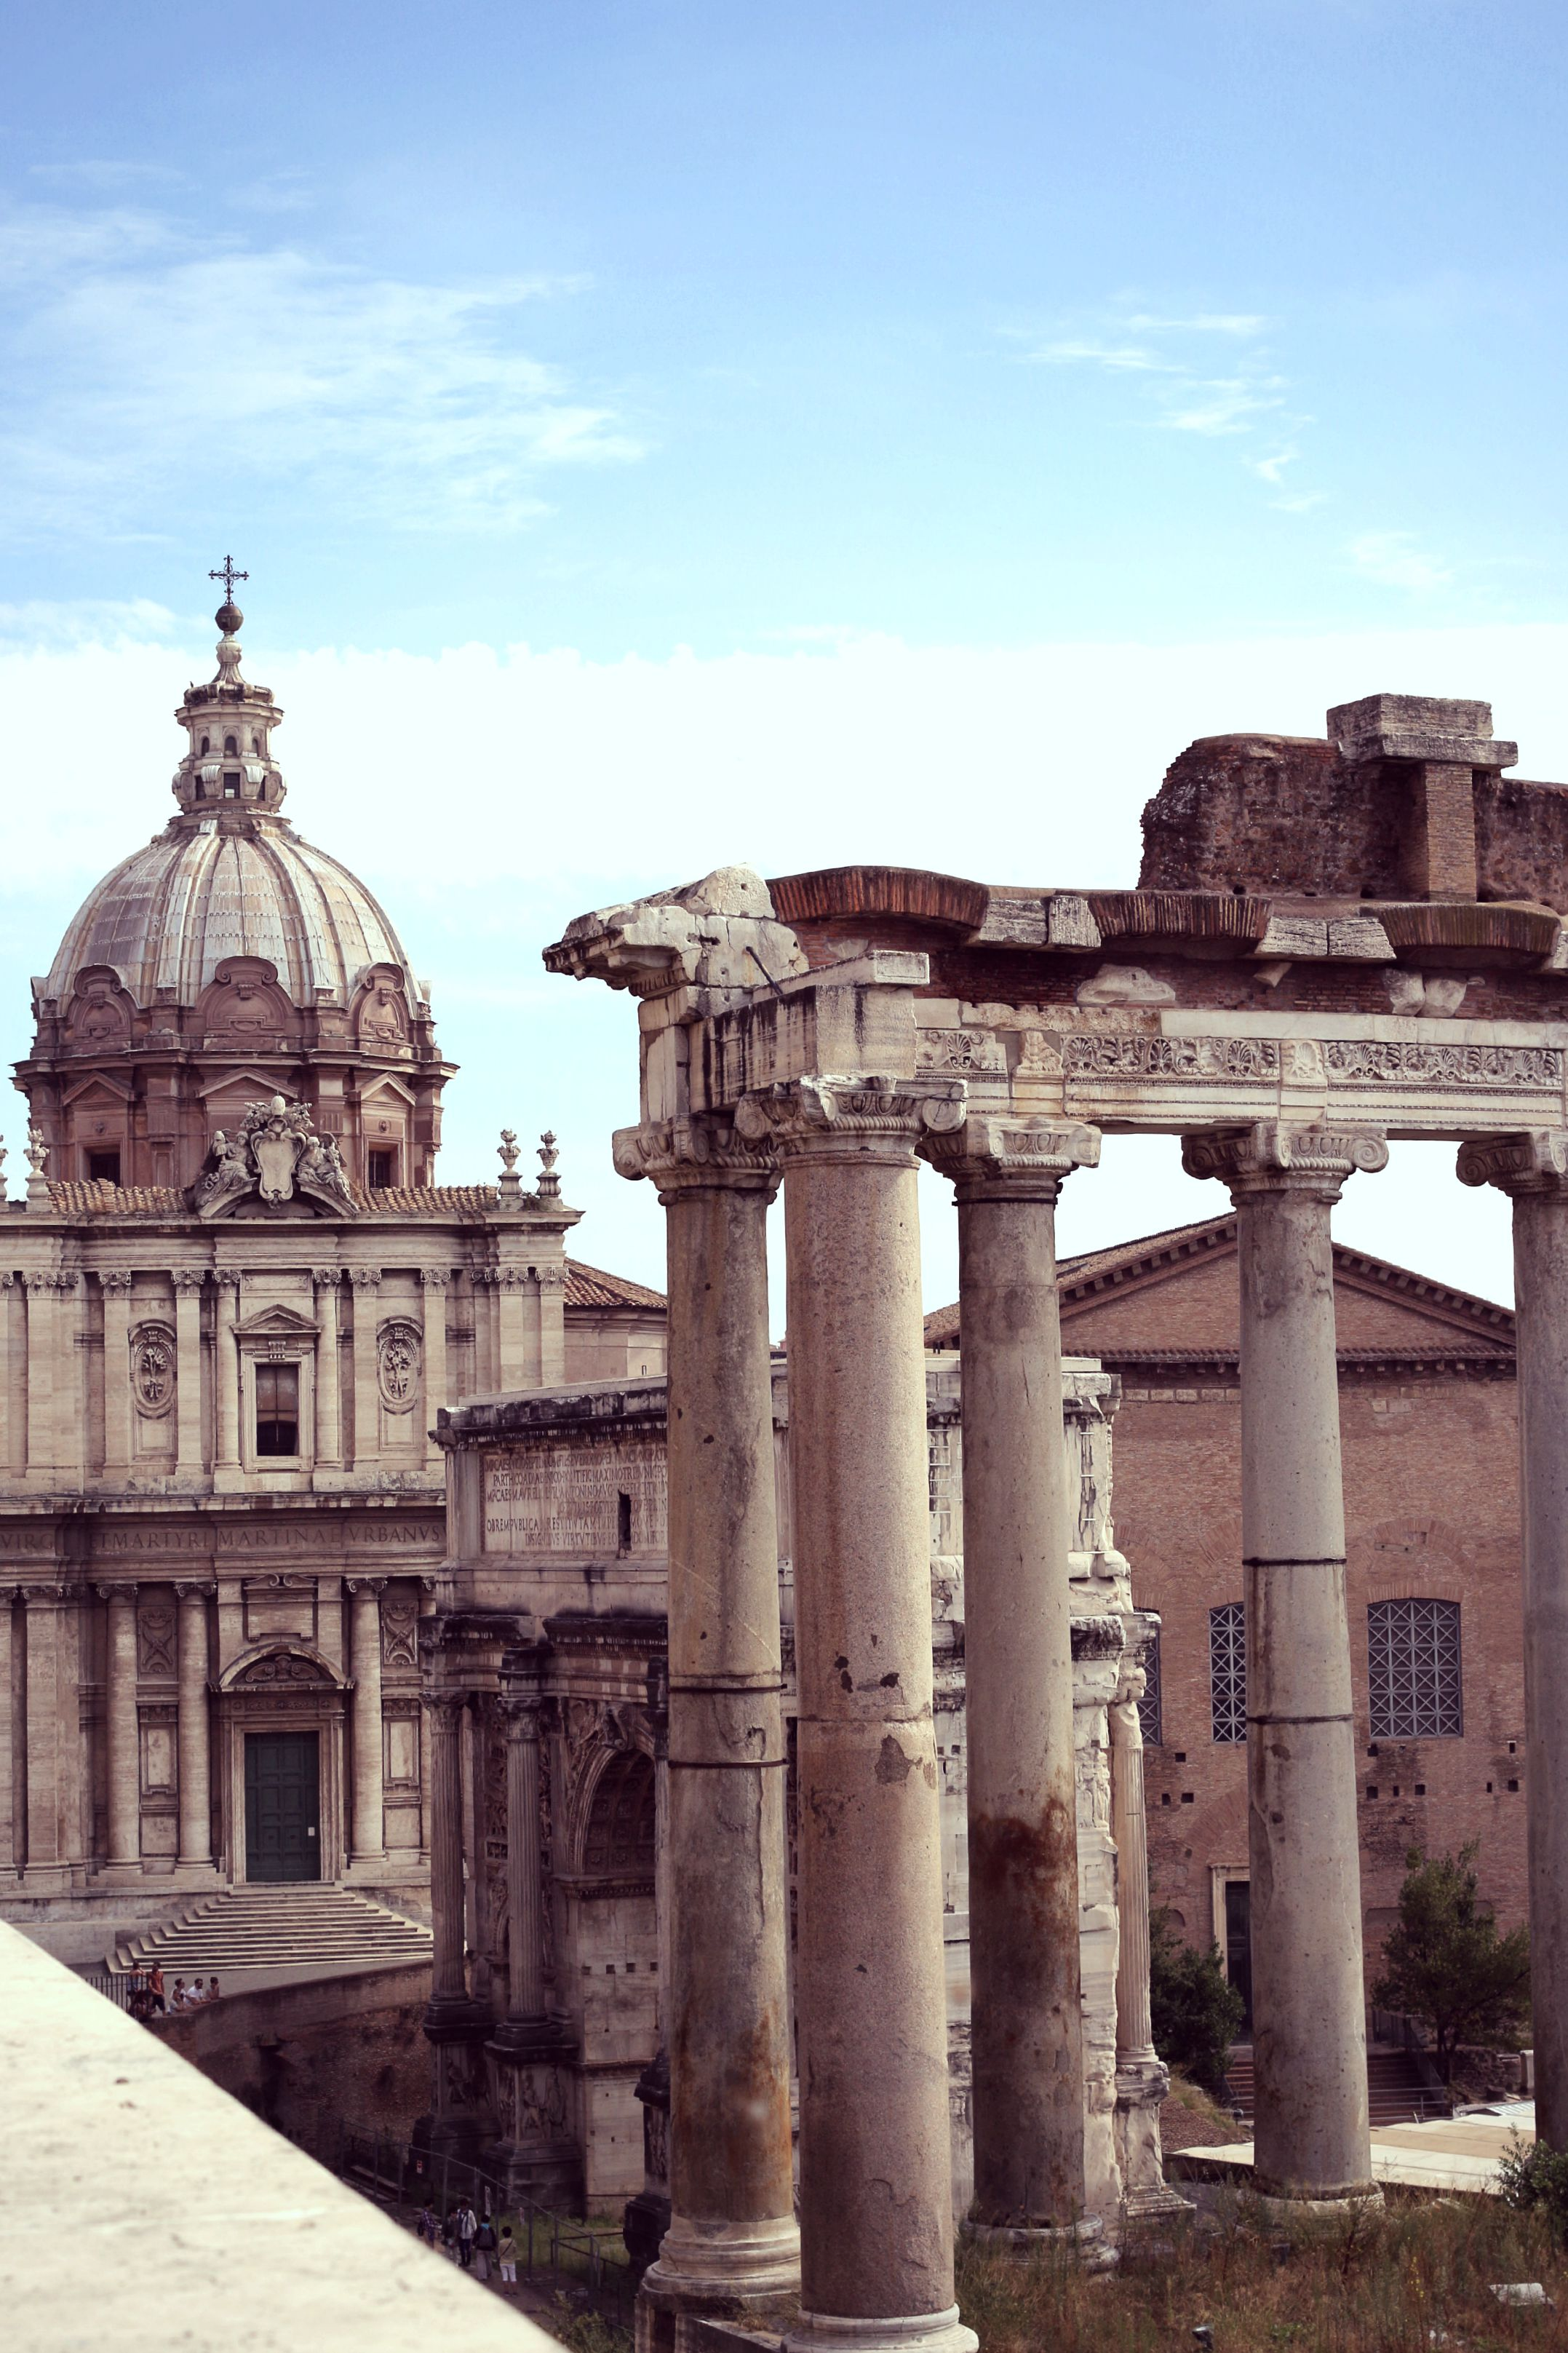 FORUM ROMANUM - getting up early is the trick